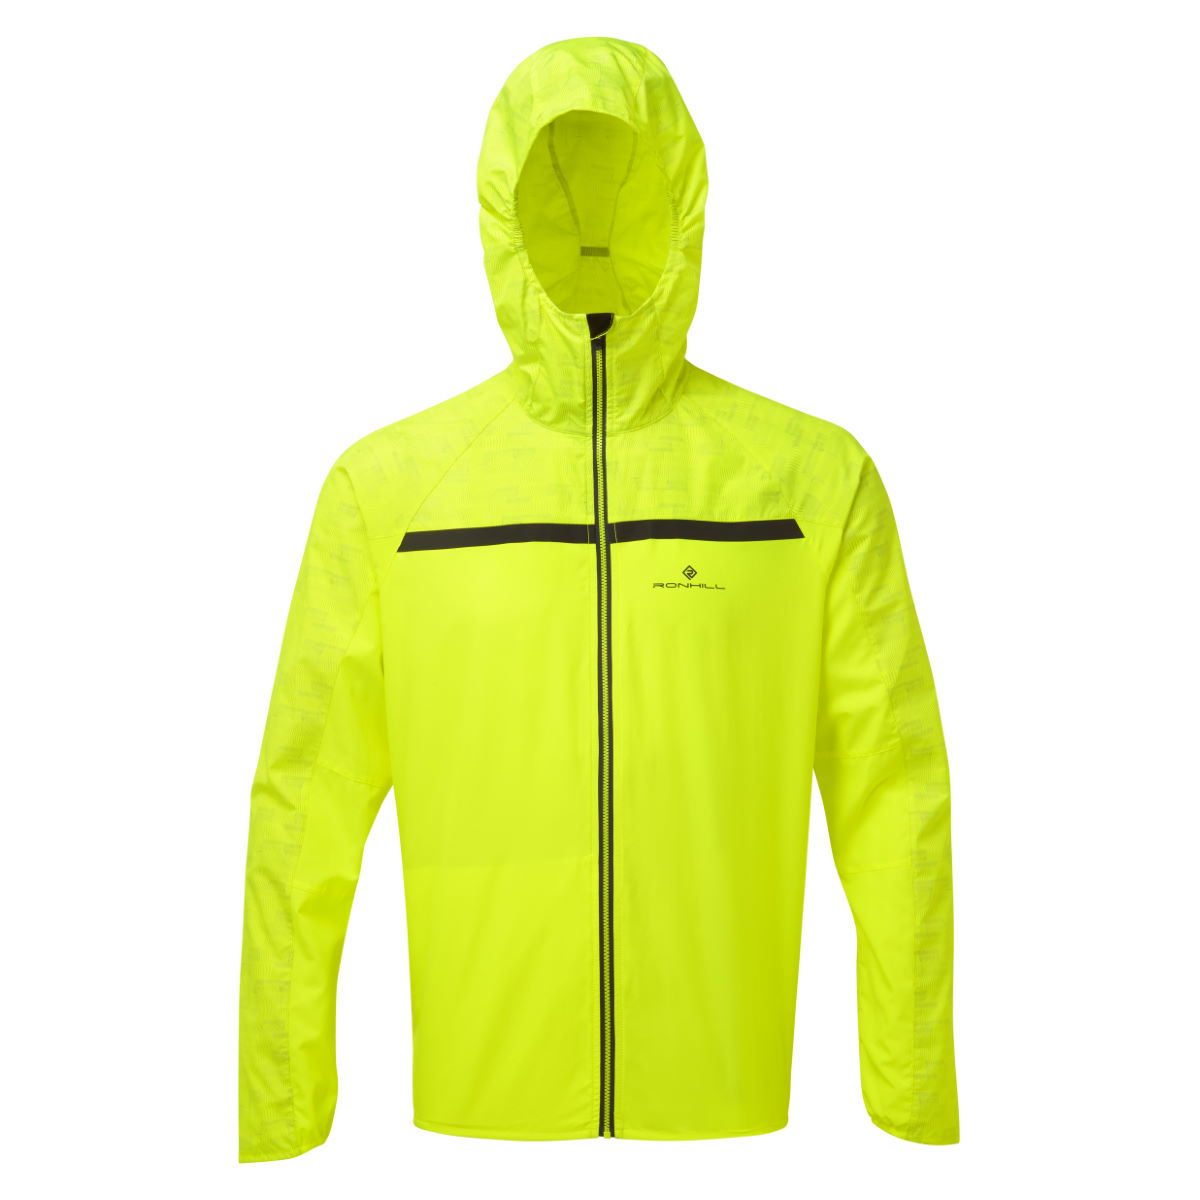 Ronhill Ronhill Momentum Afterlight Jacket   Jackets